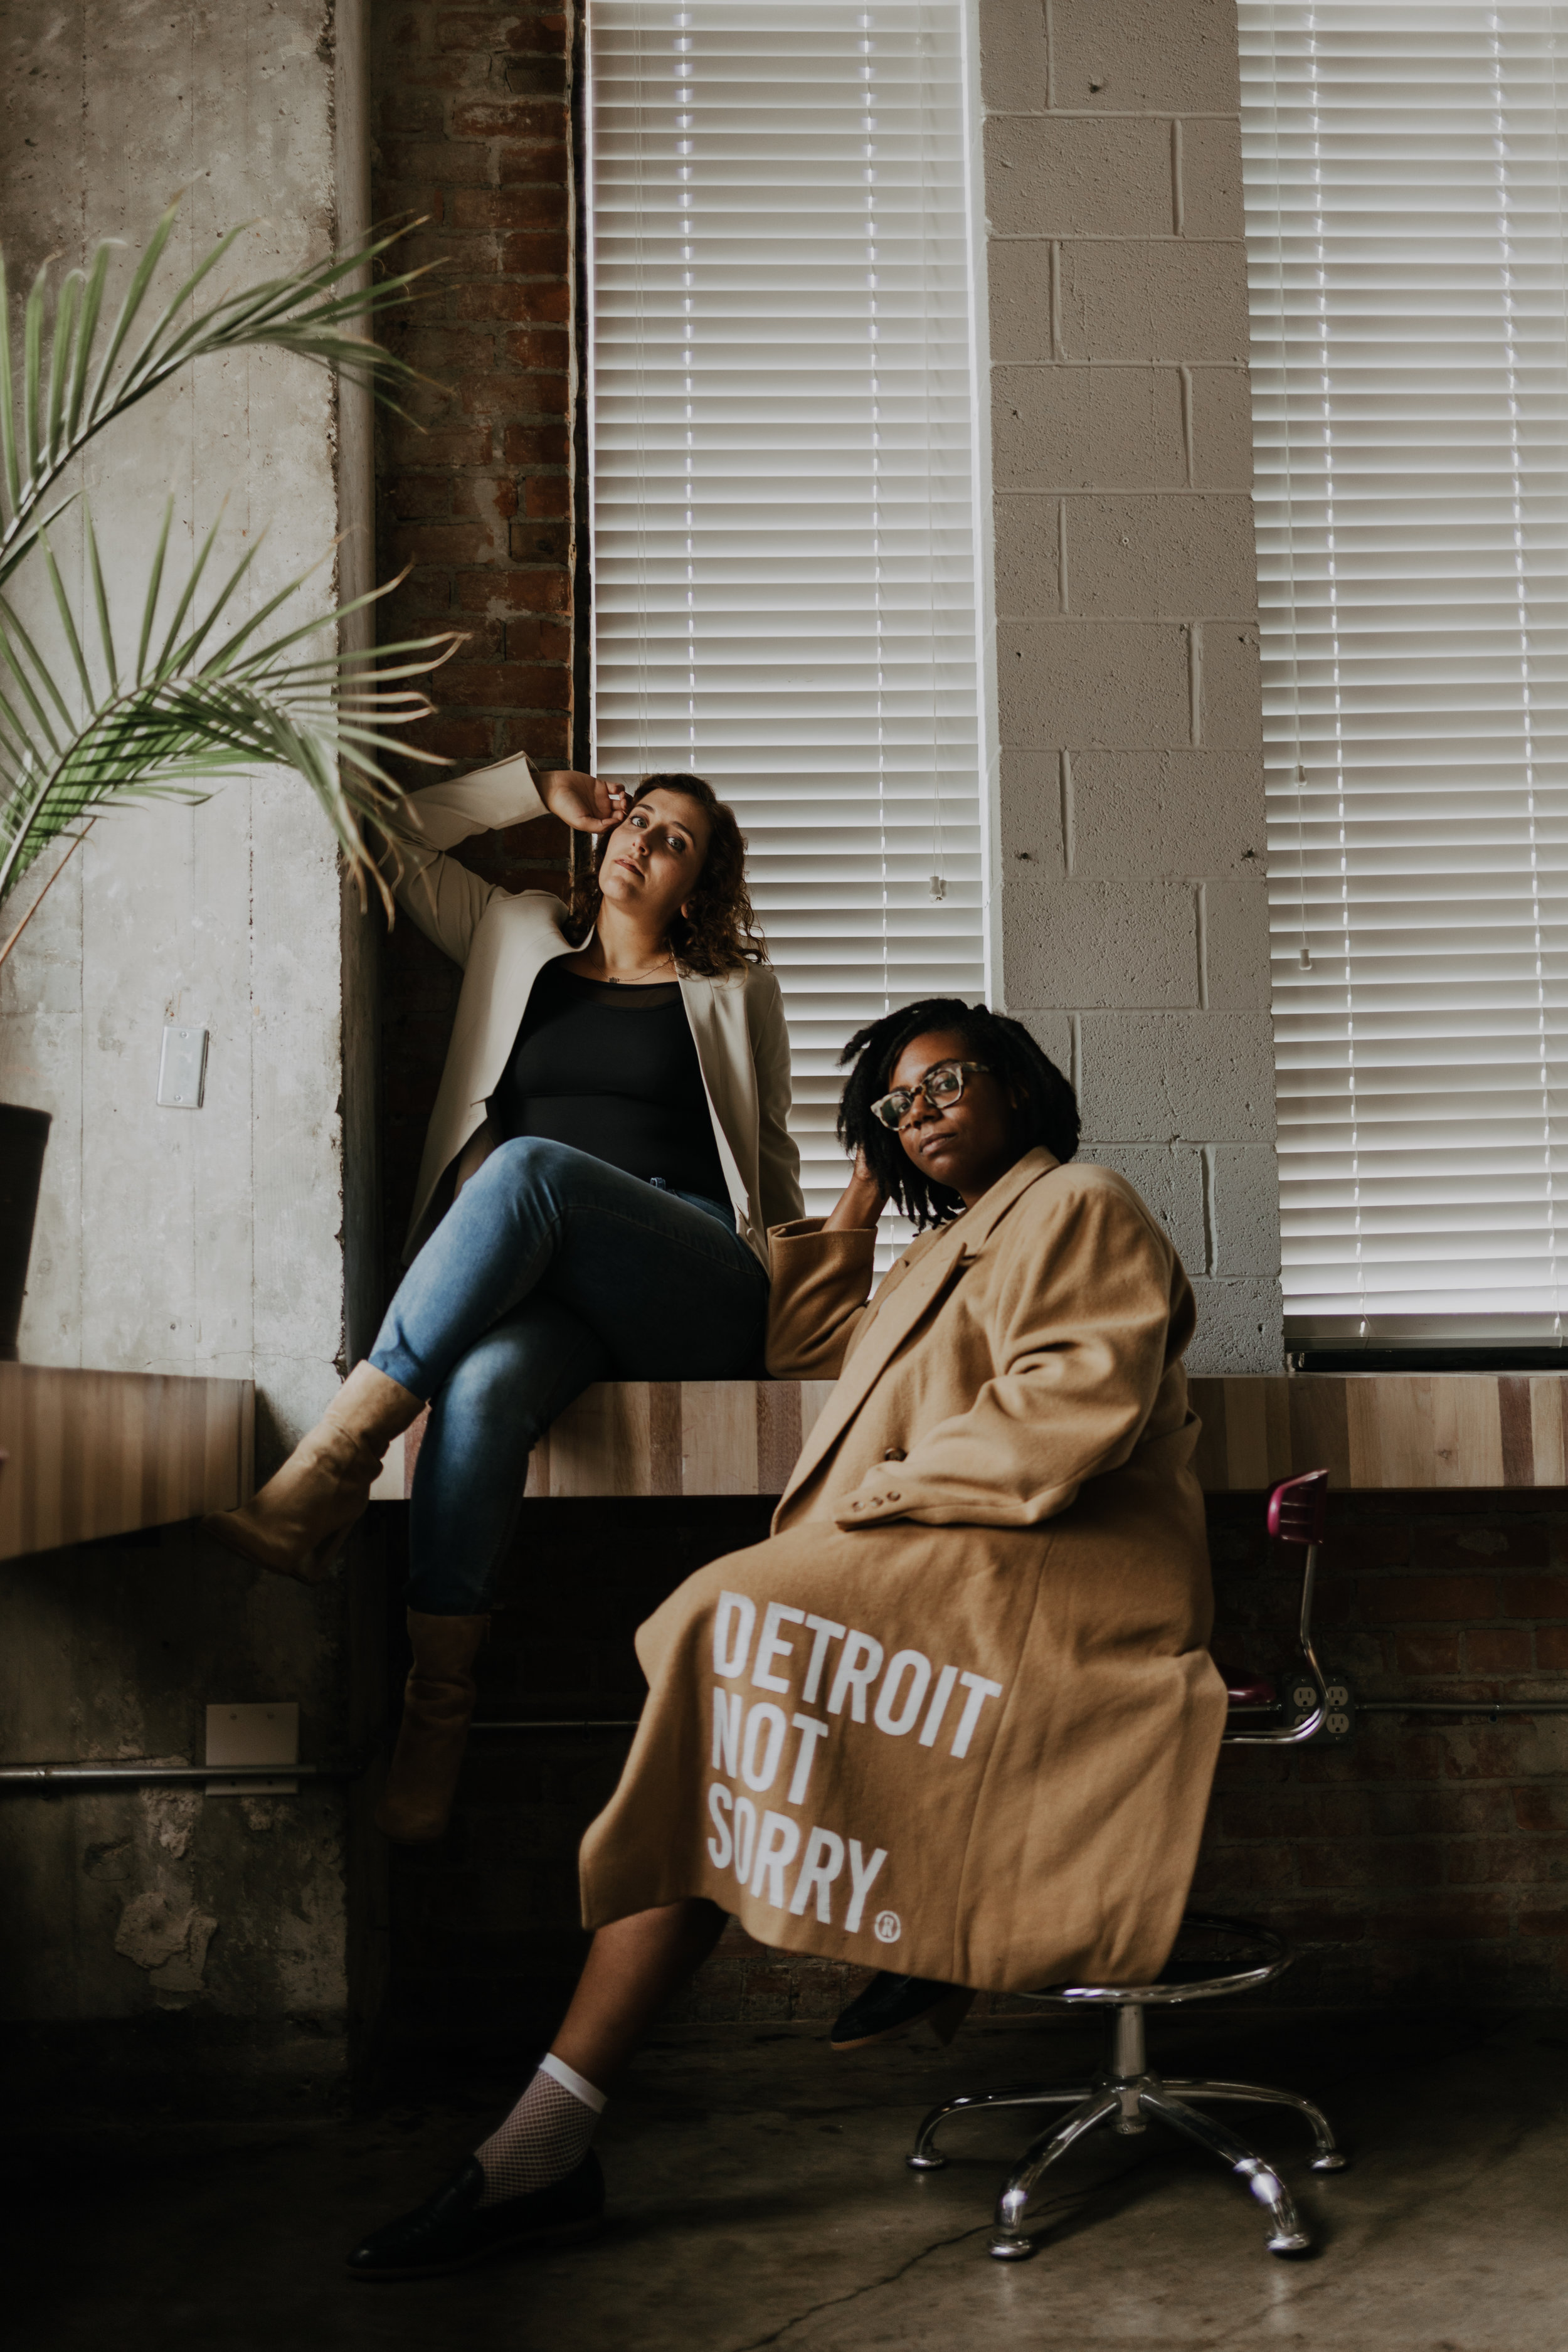 Jess Minnick  and  Dy-Min Johnson , co-founders of Detroit's  Not Sorry Apparel , photographed by Daniela Lisi